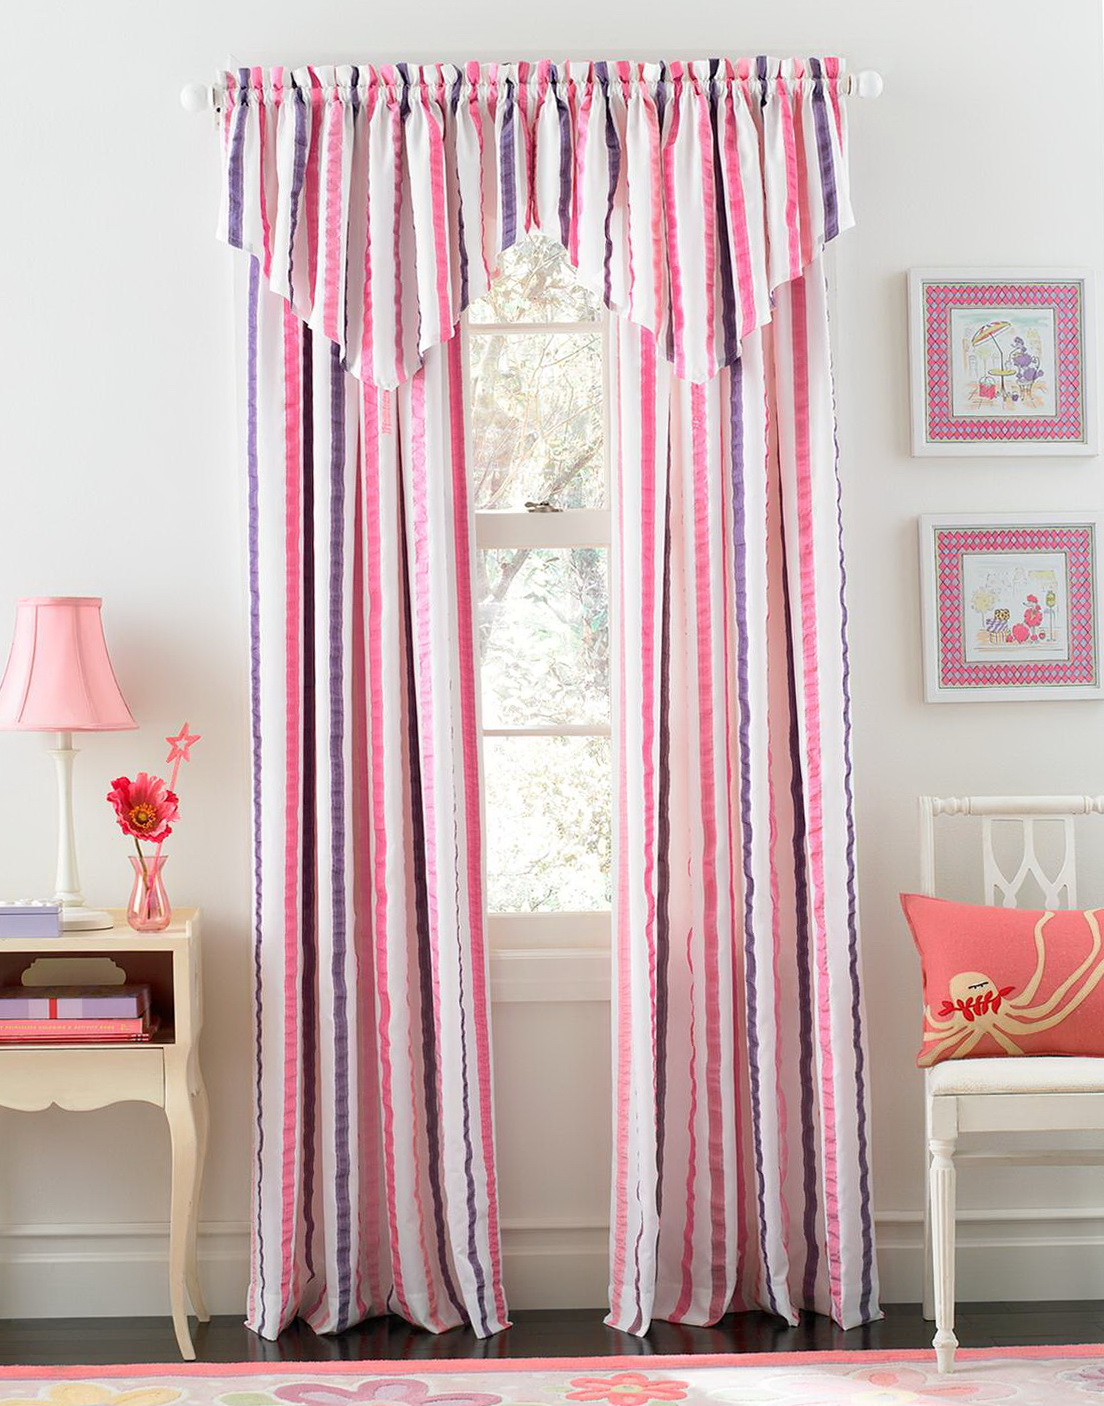 kids by pink the white yellow funny and curtain shower your on bathroom give with butterflies pole for silver curtains a marvelous interior